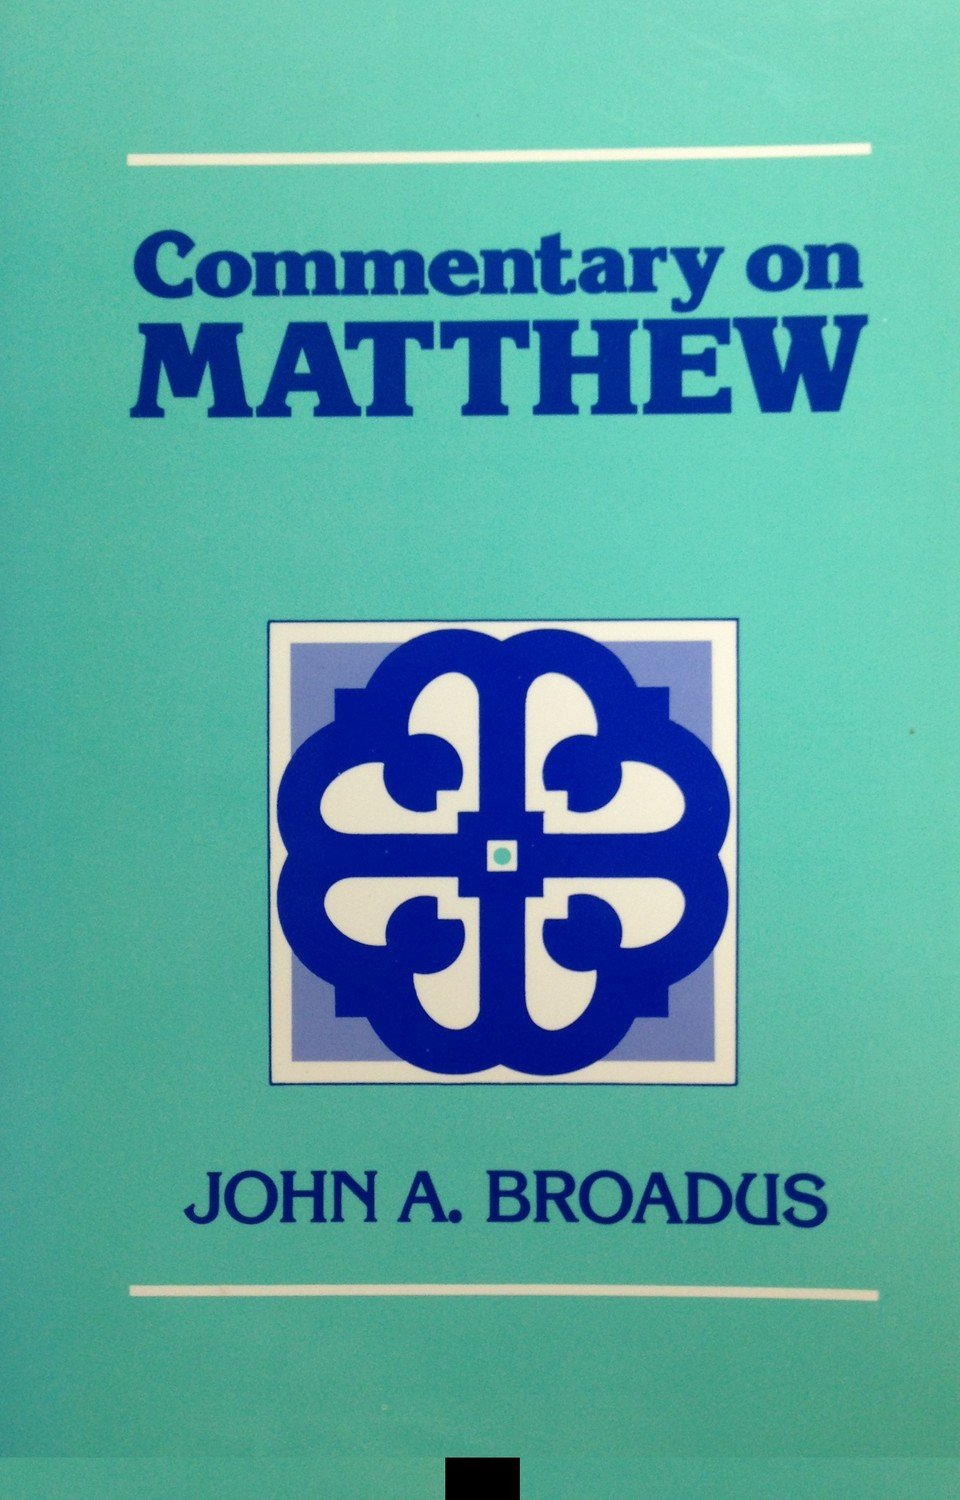 Commentary on Matthew by John A. Broadus